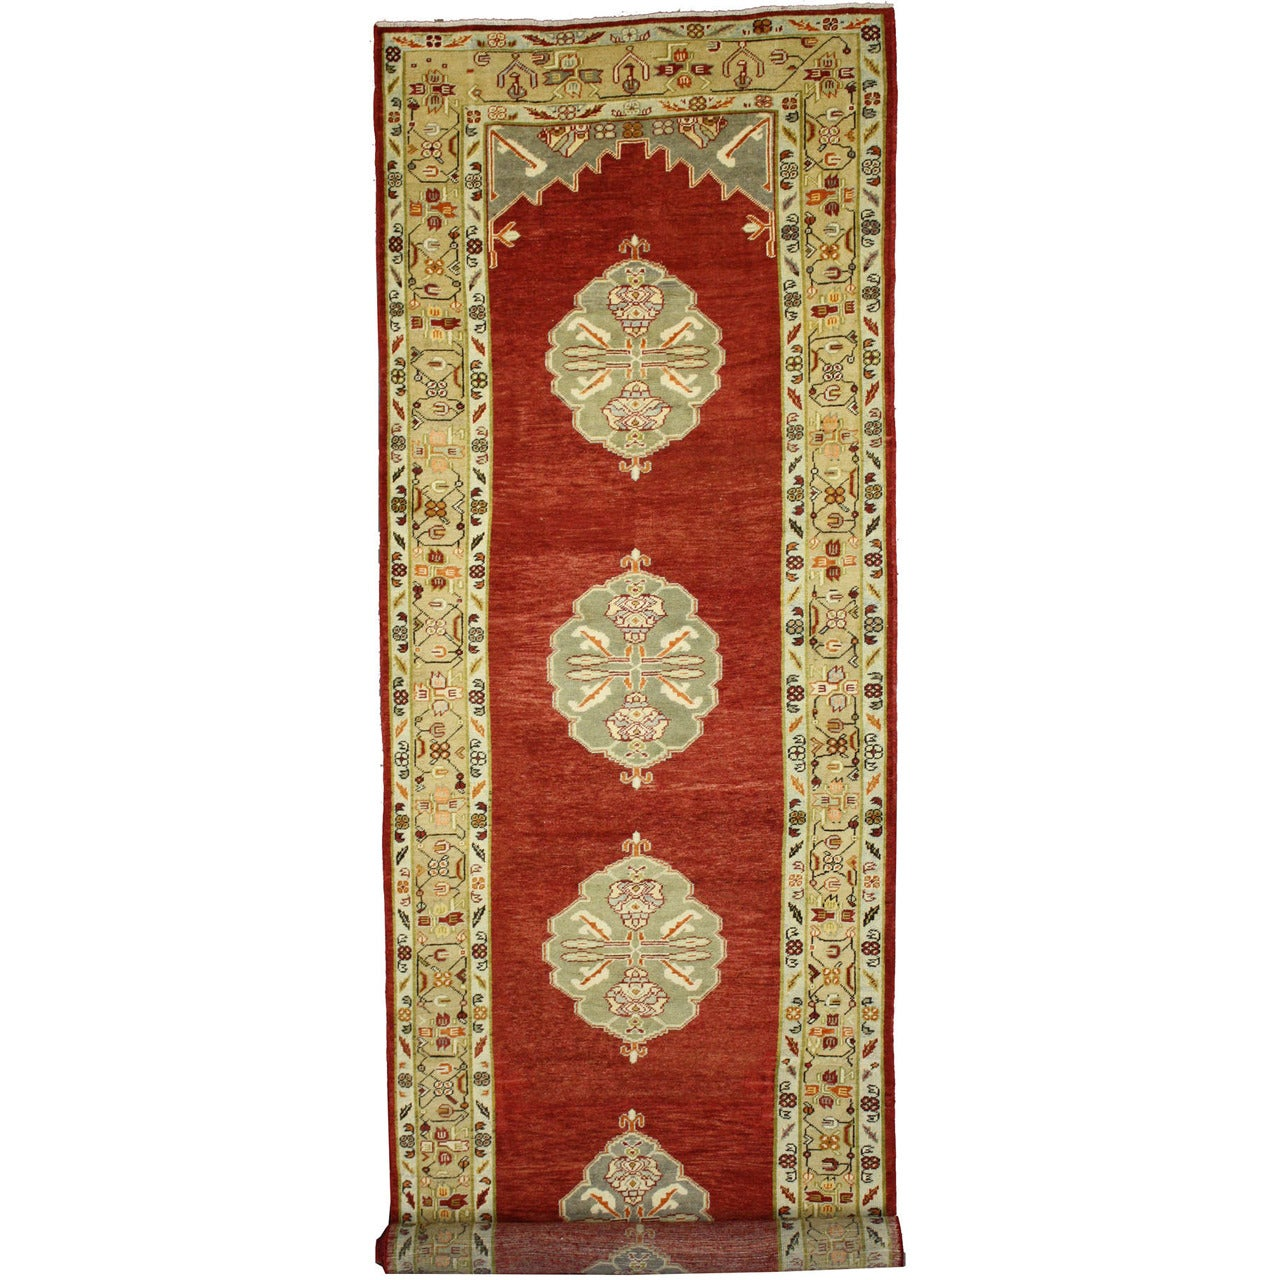 Vintage Turkish Oushak Runner with Jacobean Style, Extra-Long Hallway Runner